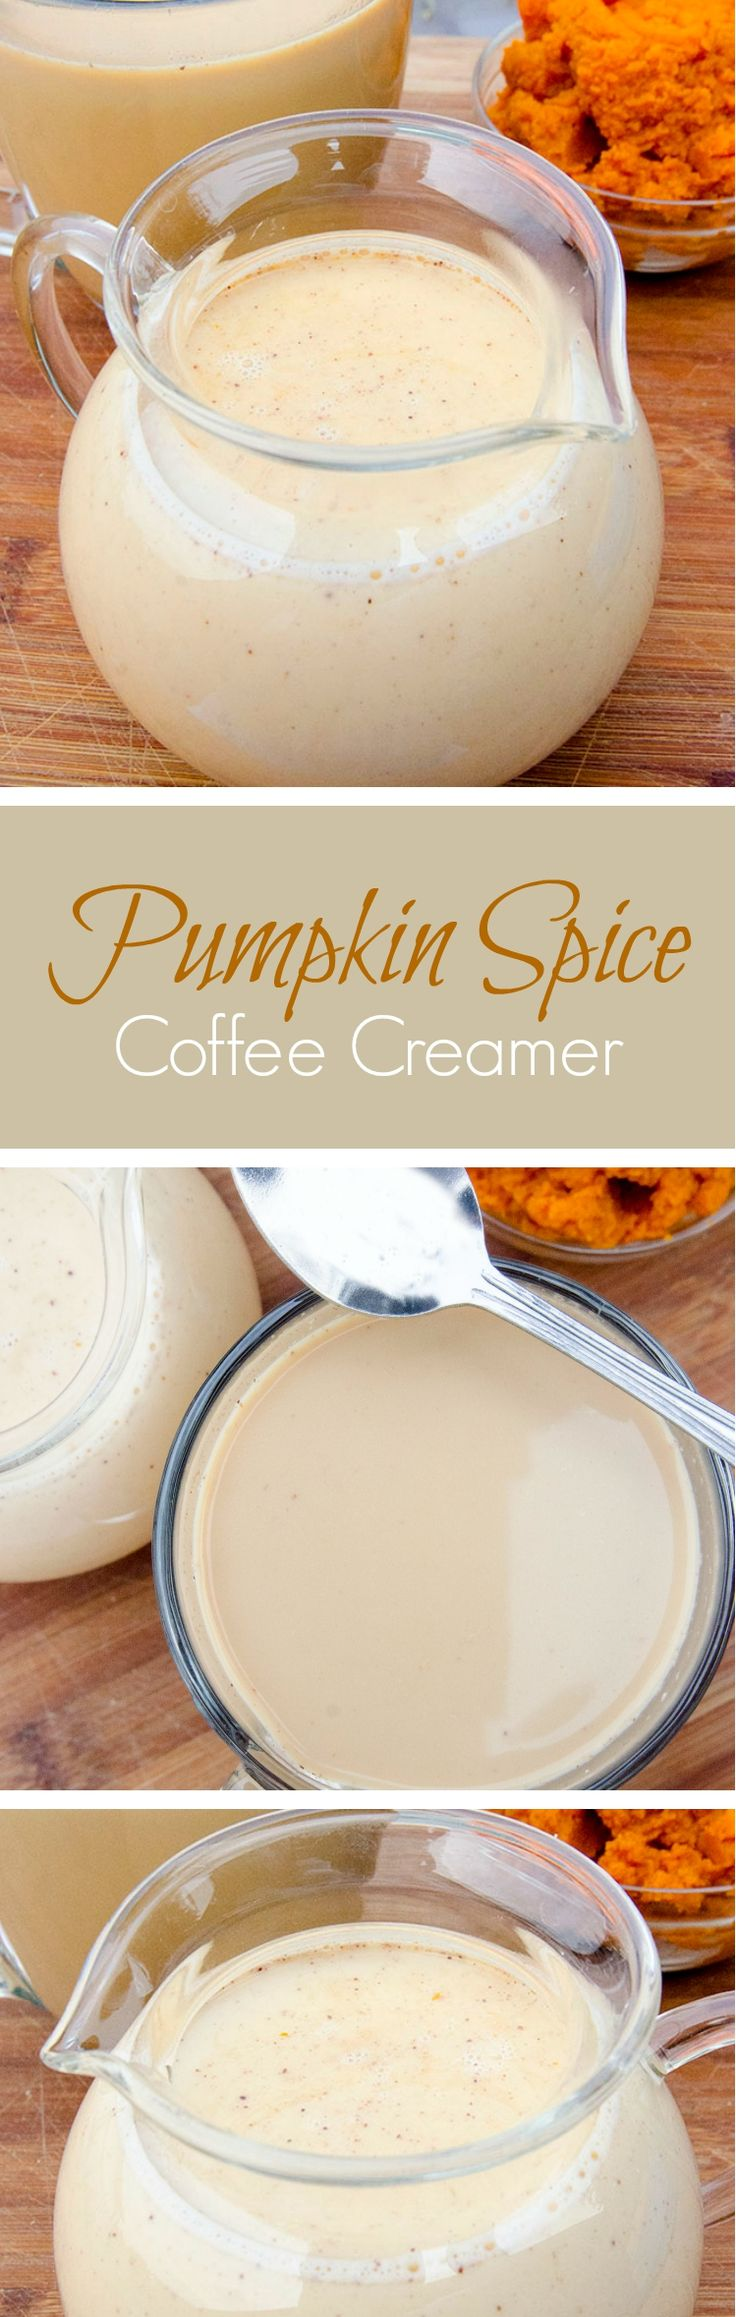 Easy recipe for the lust-worthy Pumpkin Spice Coffee Creamer, using just 6 yummy…